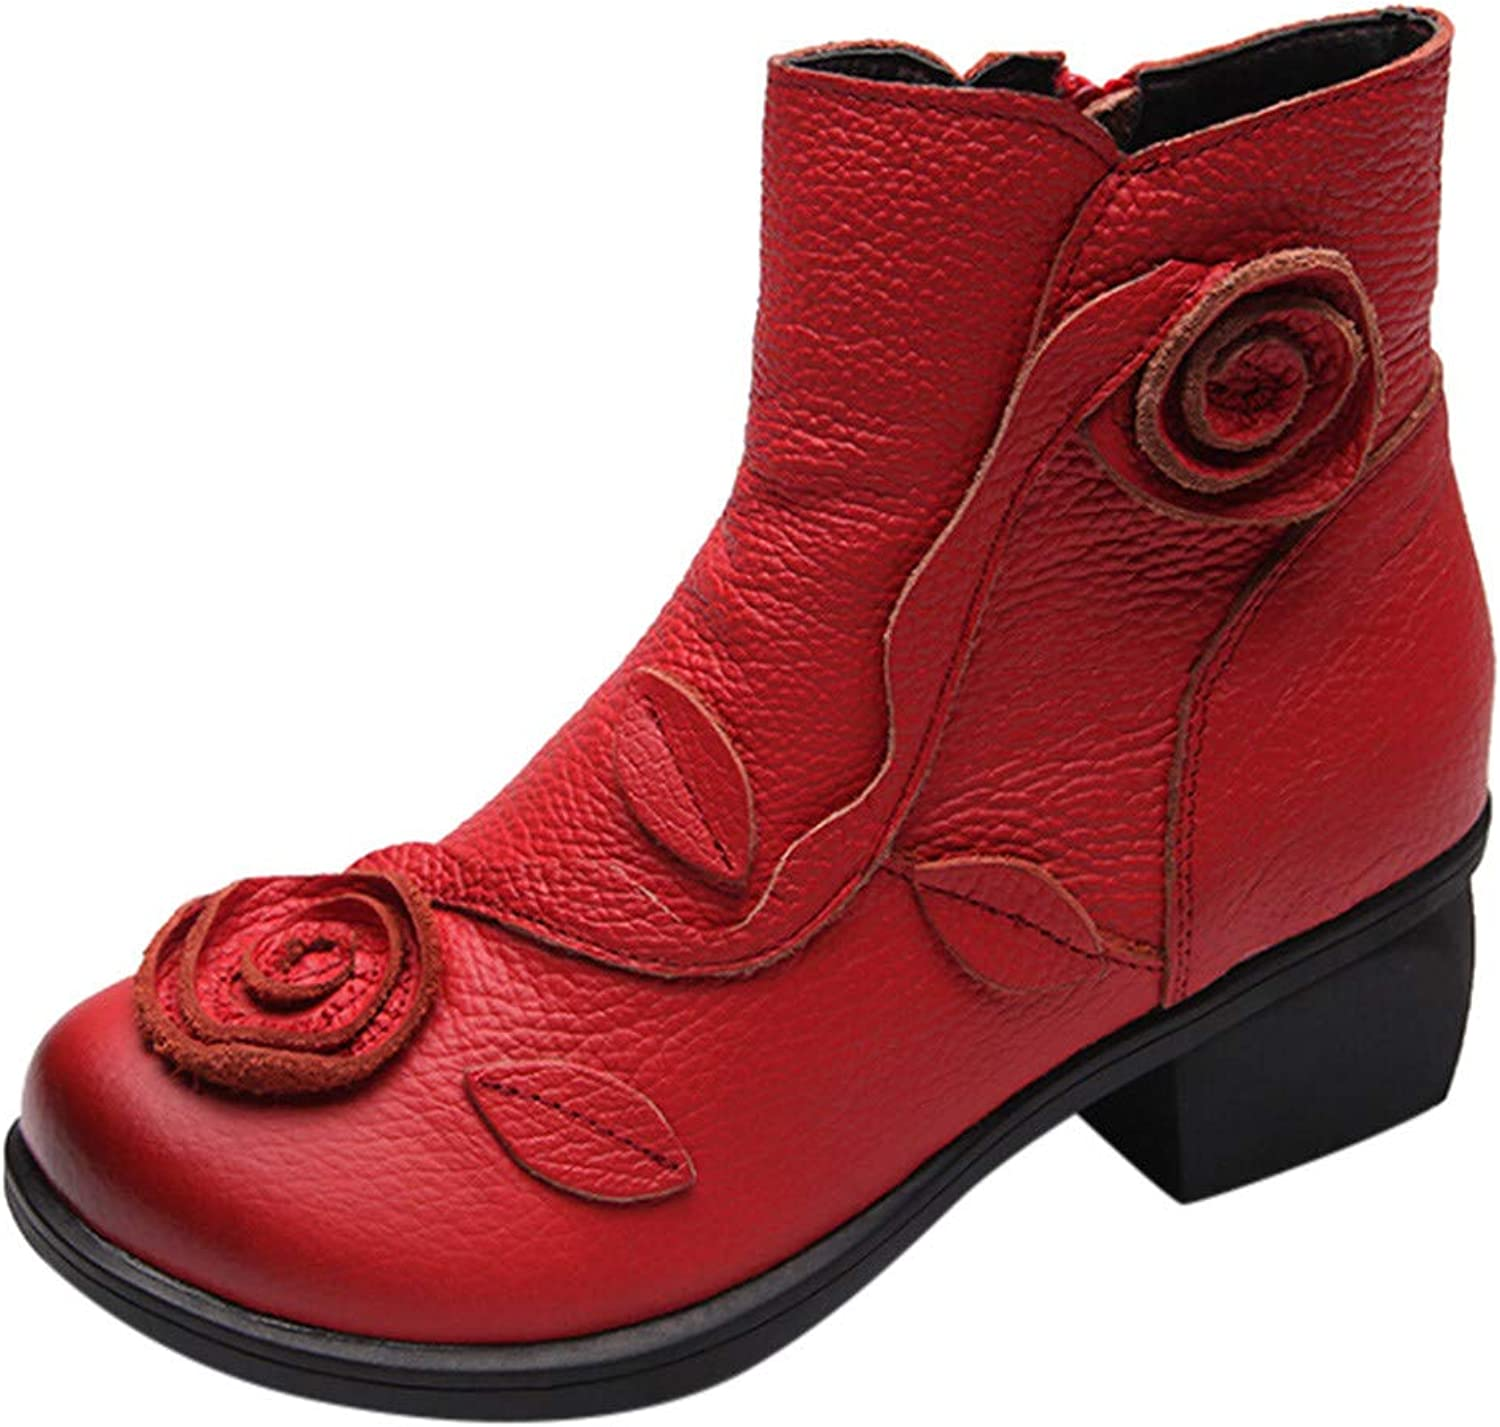 Delicate Retro Hand-Stitched Carve Boots, Women's Ethnic Style, pink Flower Leather Martin Boots